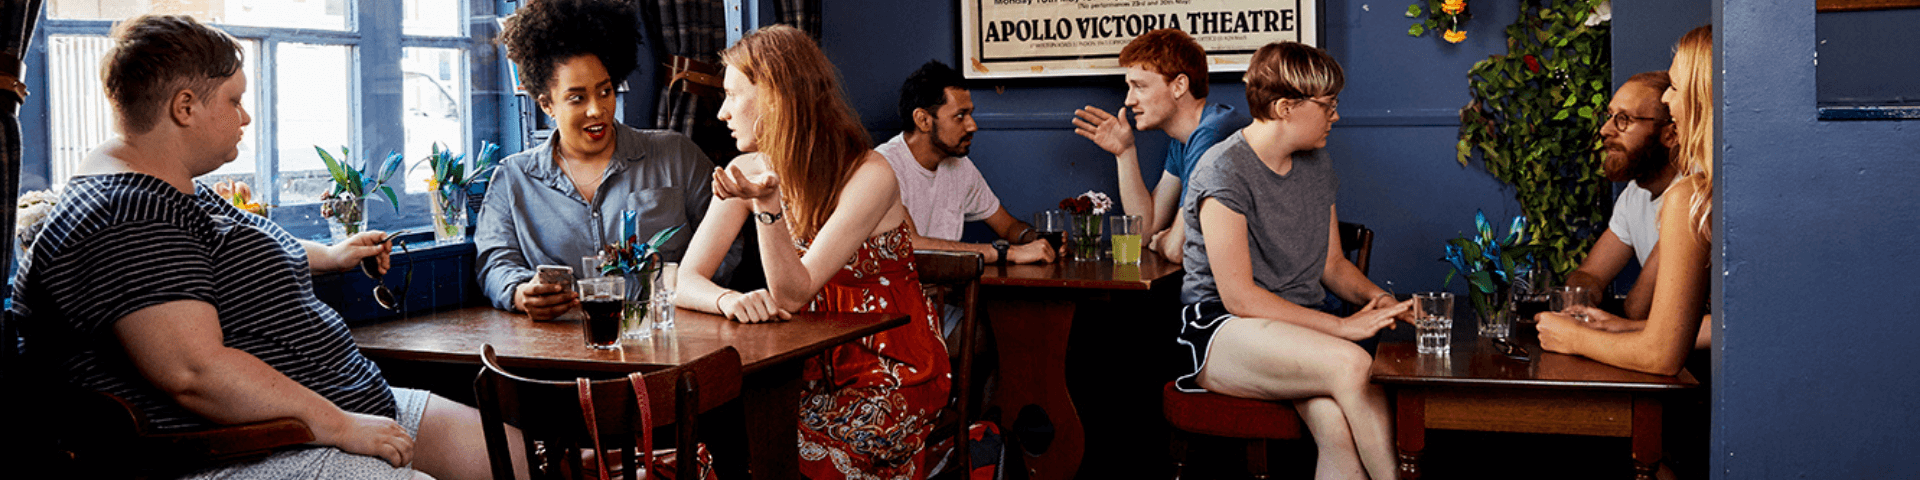 Group of people sitting together in a pub